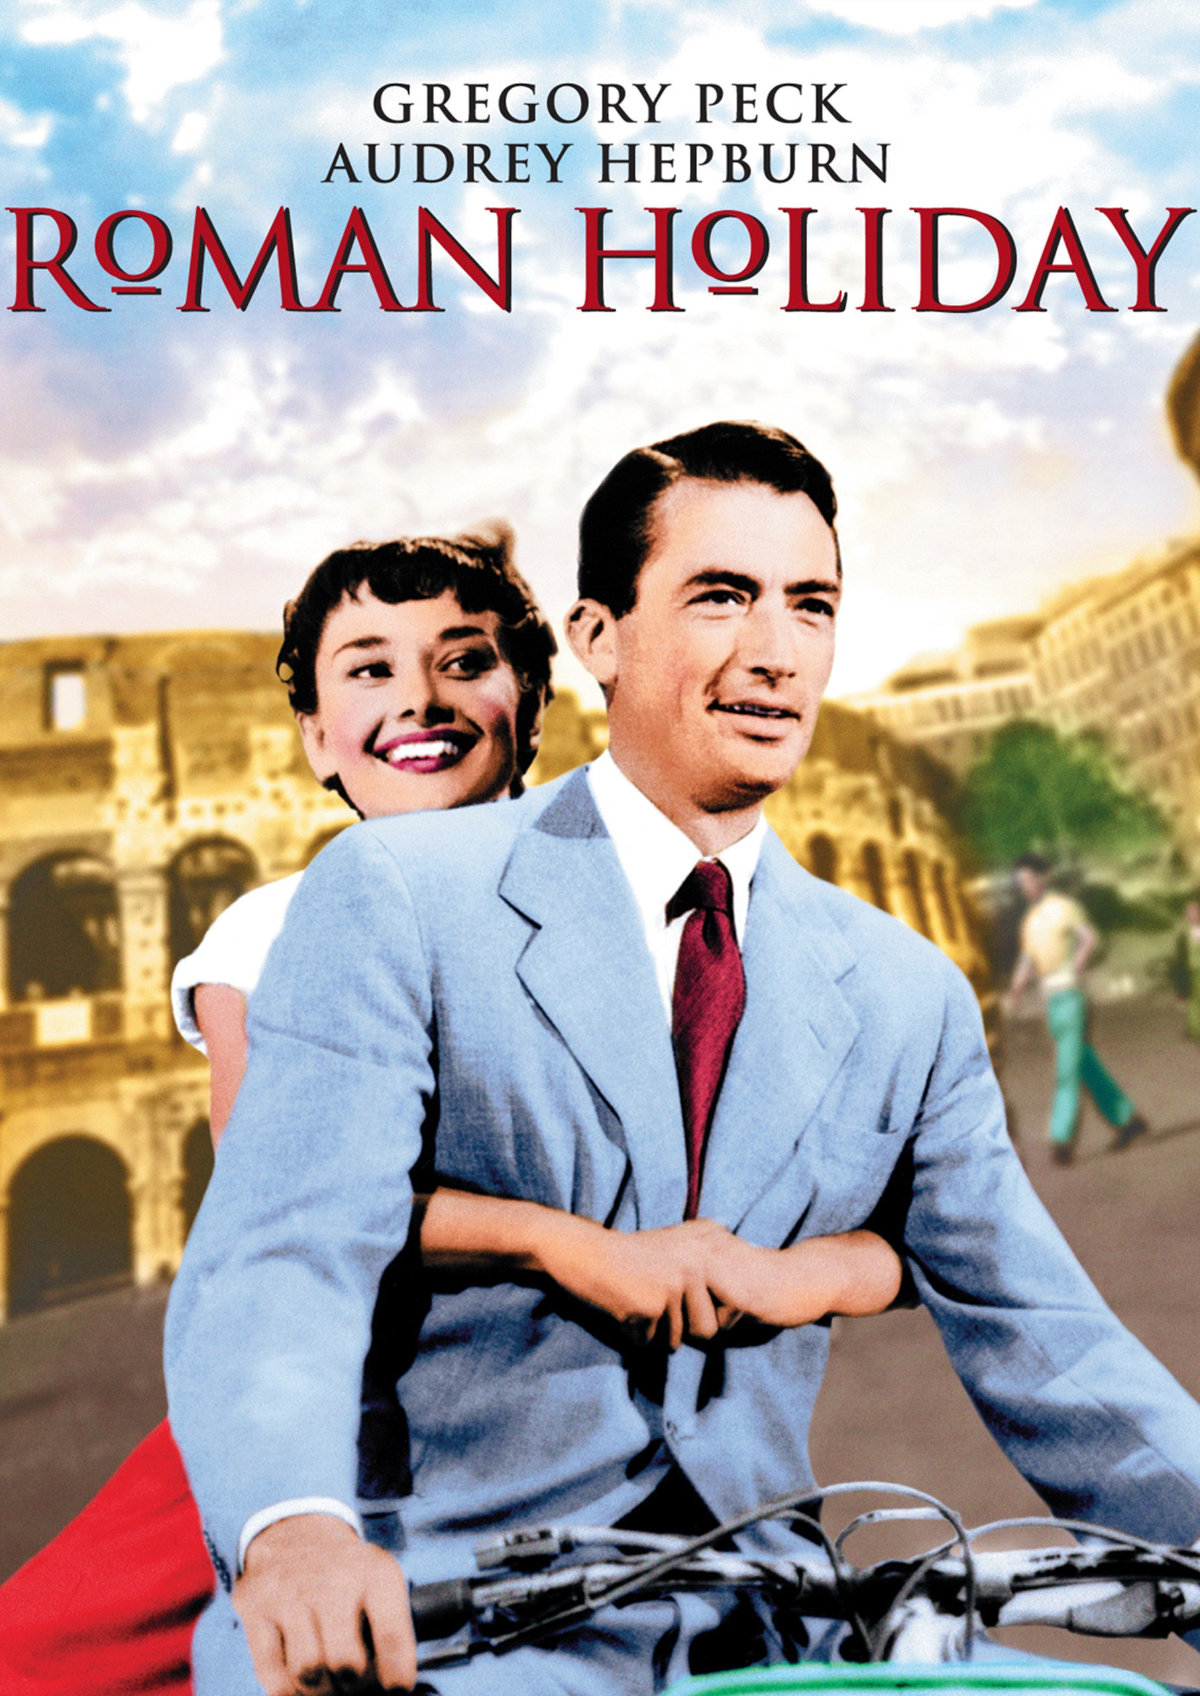 'Roman Holiday' movie poster